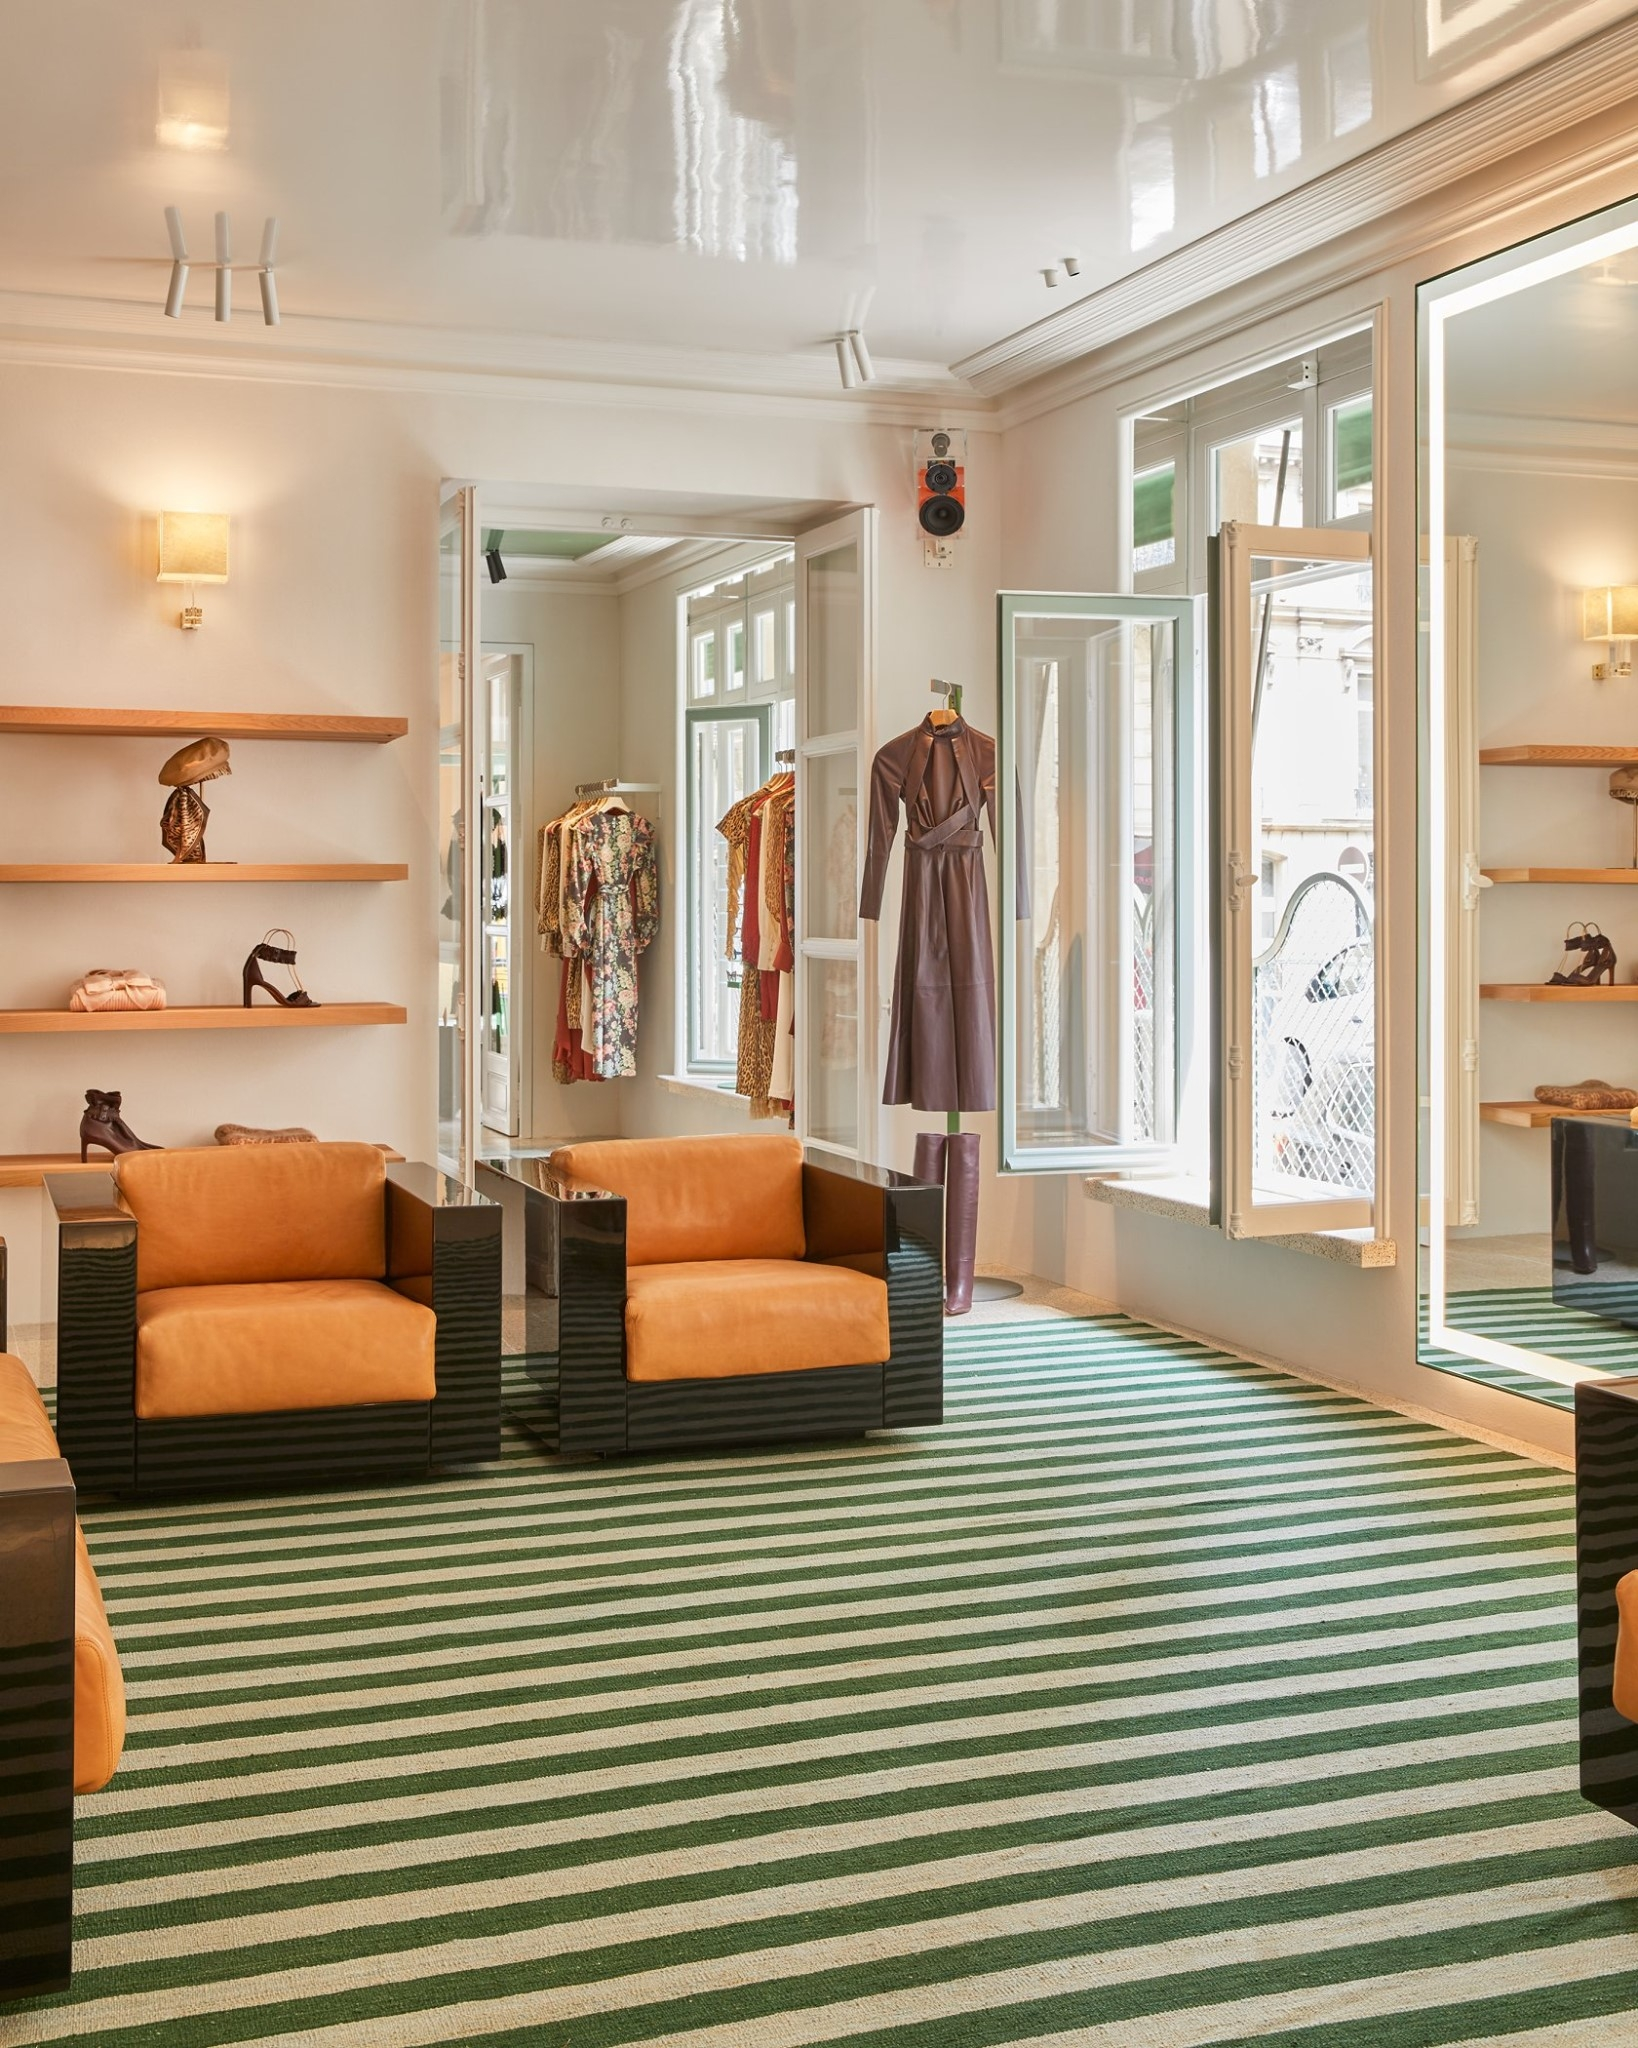 The interior of our Paris store features a minimalistic design with bright orange and green accents